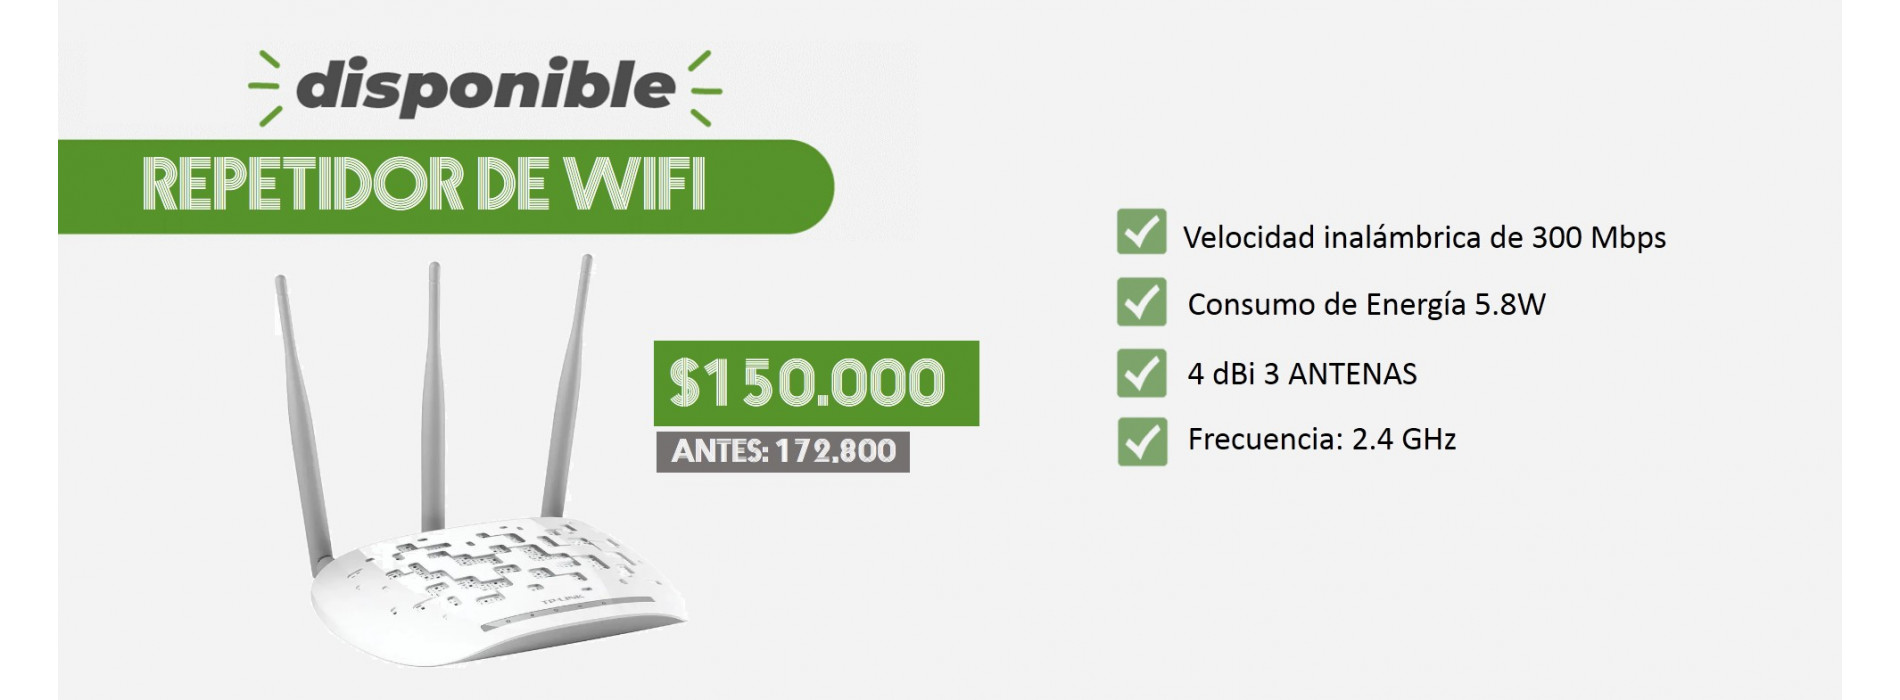 http://decompras24.lfcredes.com.co/categoria-tecnologia-equipos-router